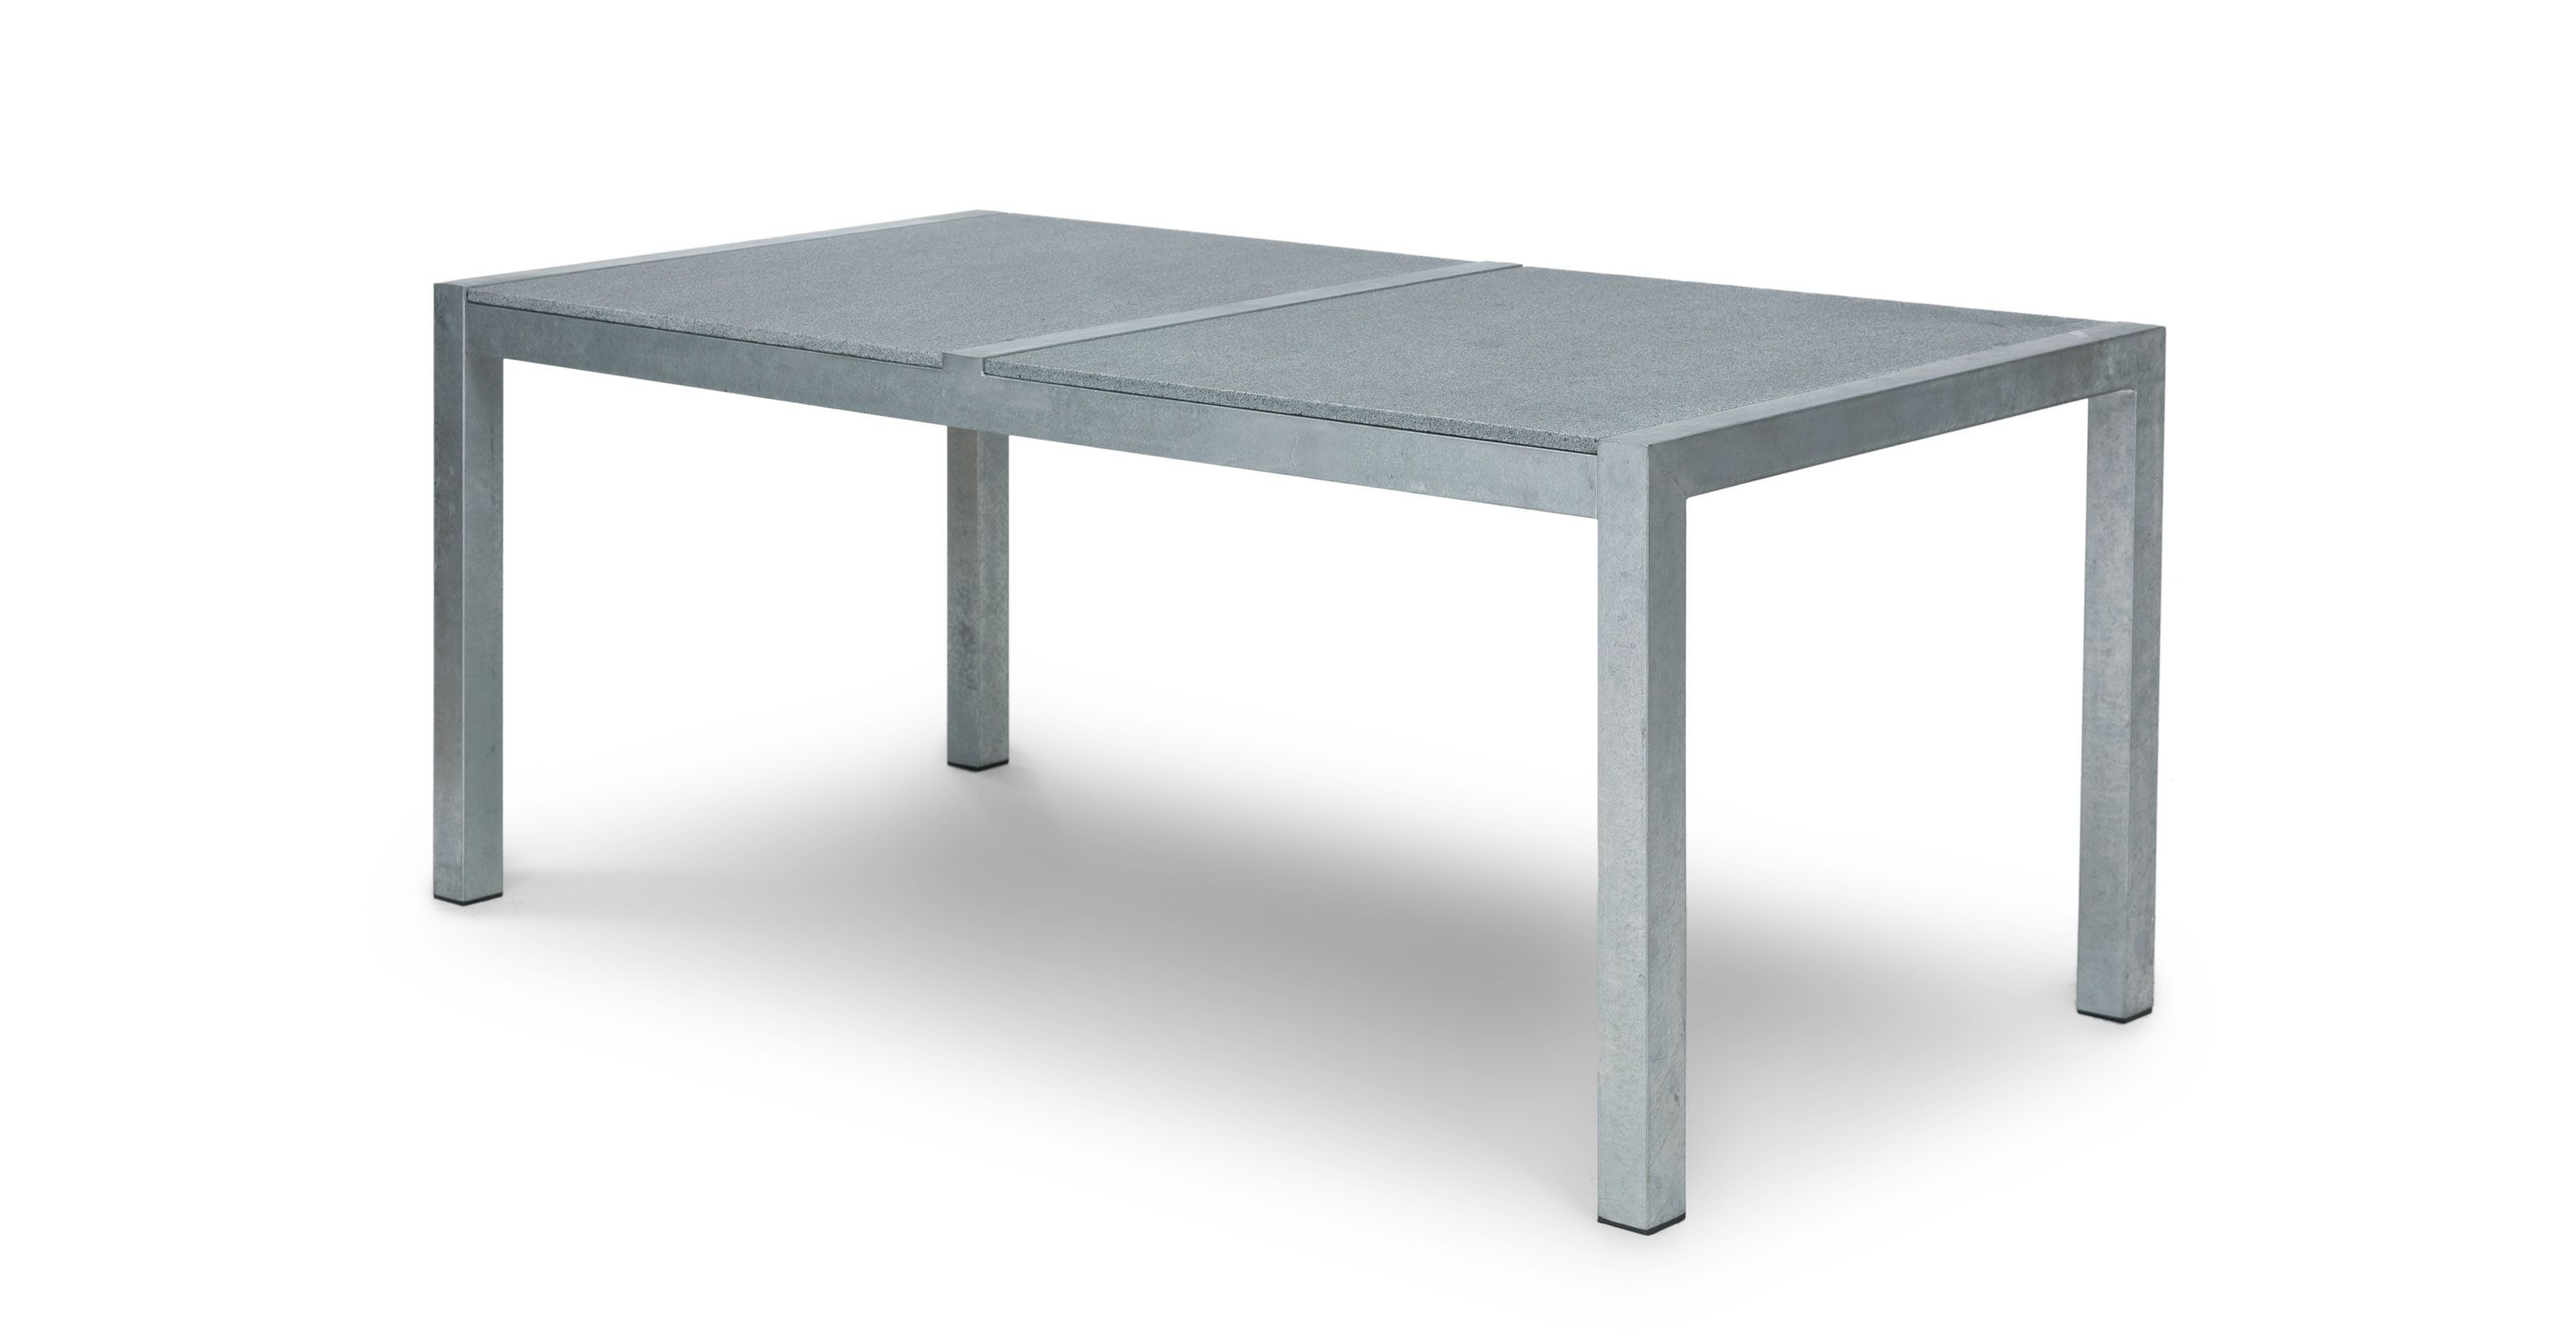 Nebula Granite Outdoor Dining Table For 6   Dining Tables   Article |  Modern, Mid